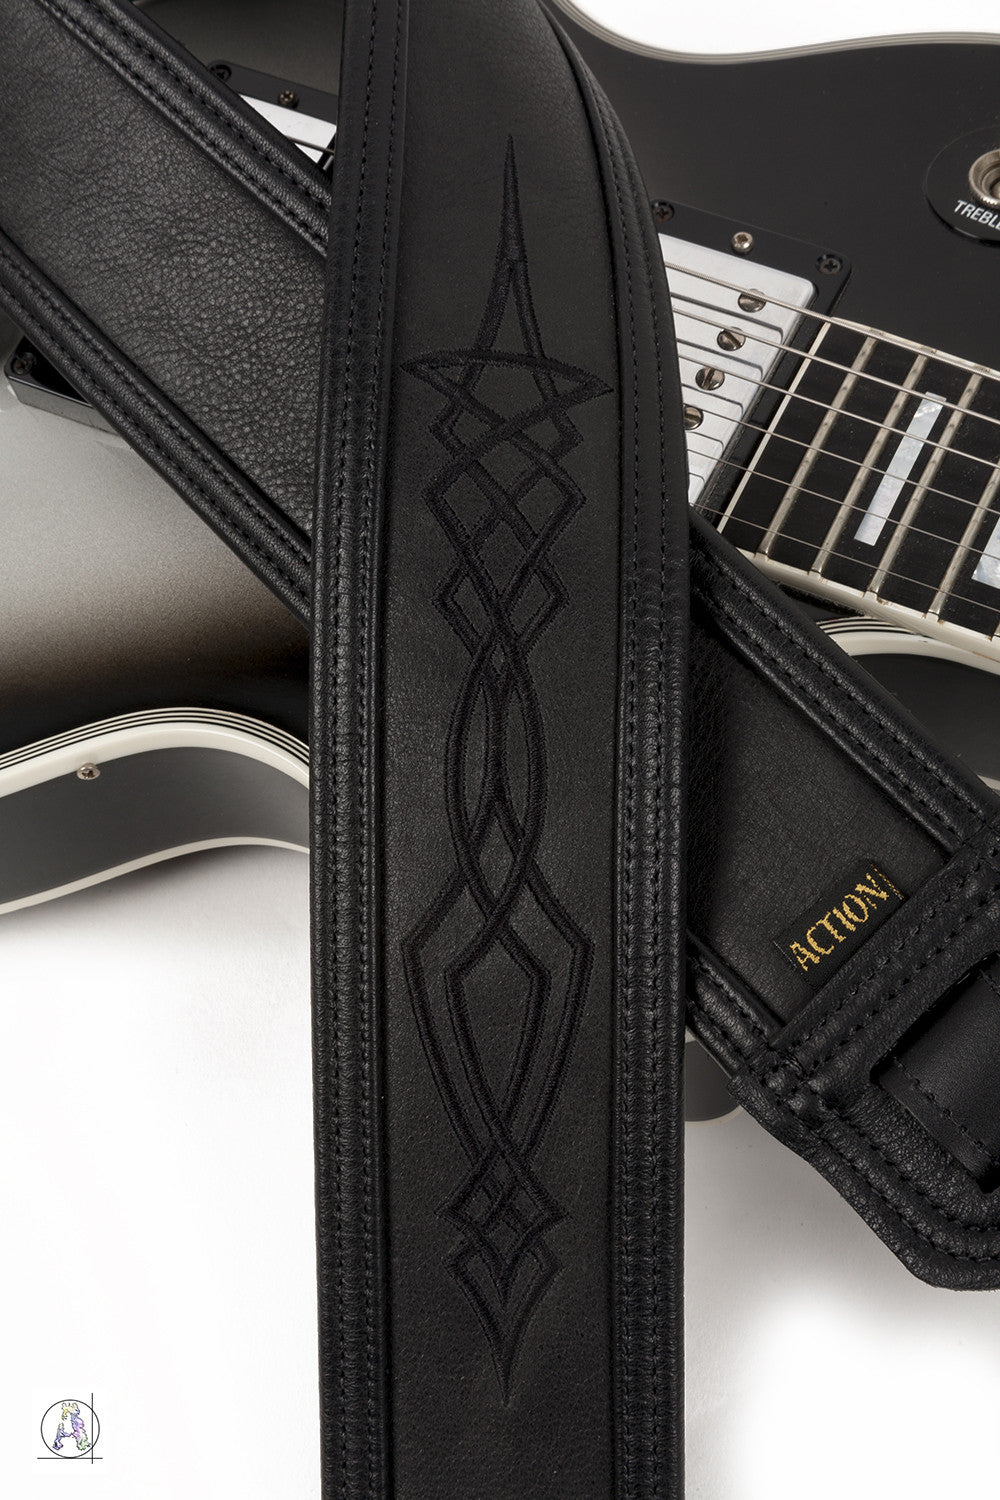 Stealth - Soft Black Leather Guitar Strap with Black Pinstriping